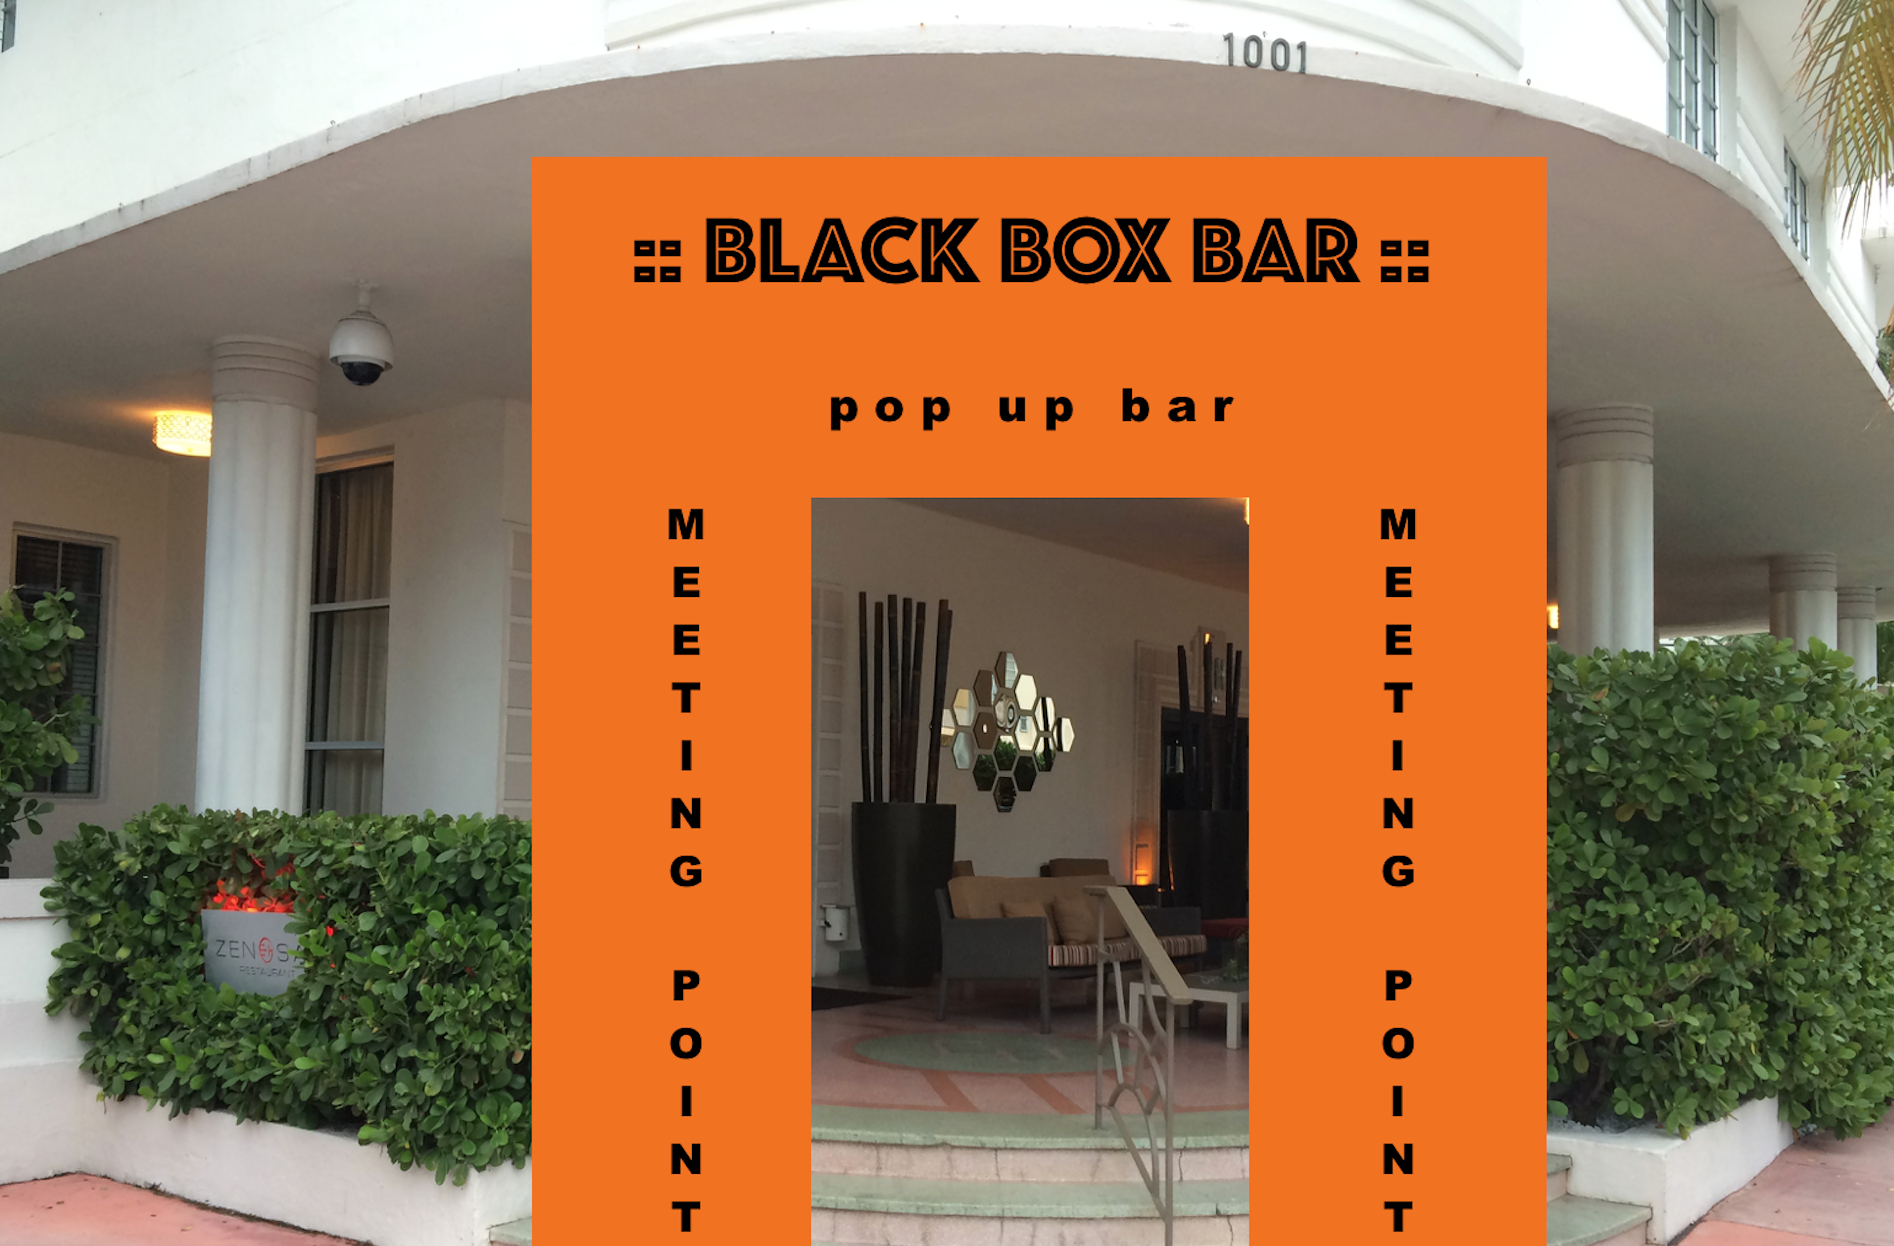 pop up bar will open at zen sai miami beach 2017 black box bar. Black Bedroom Furniture Sets. Home Design Ideas